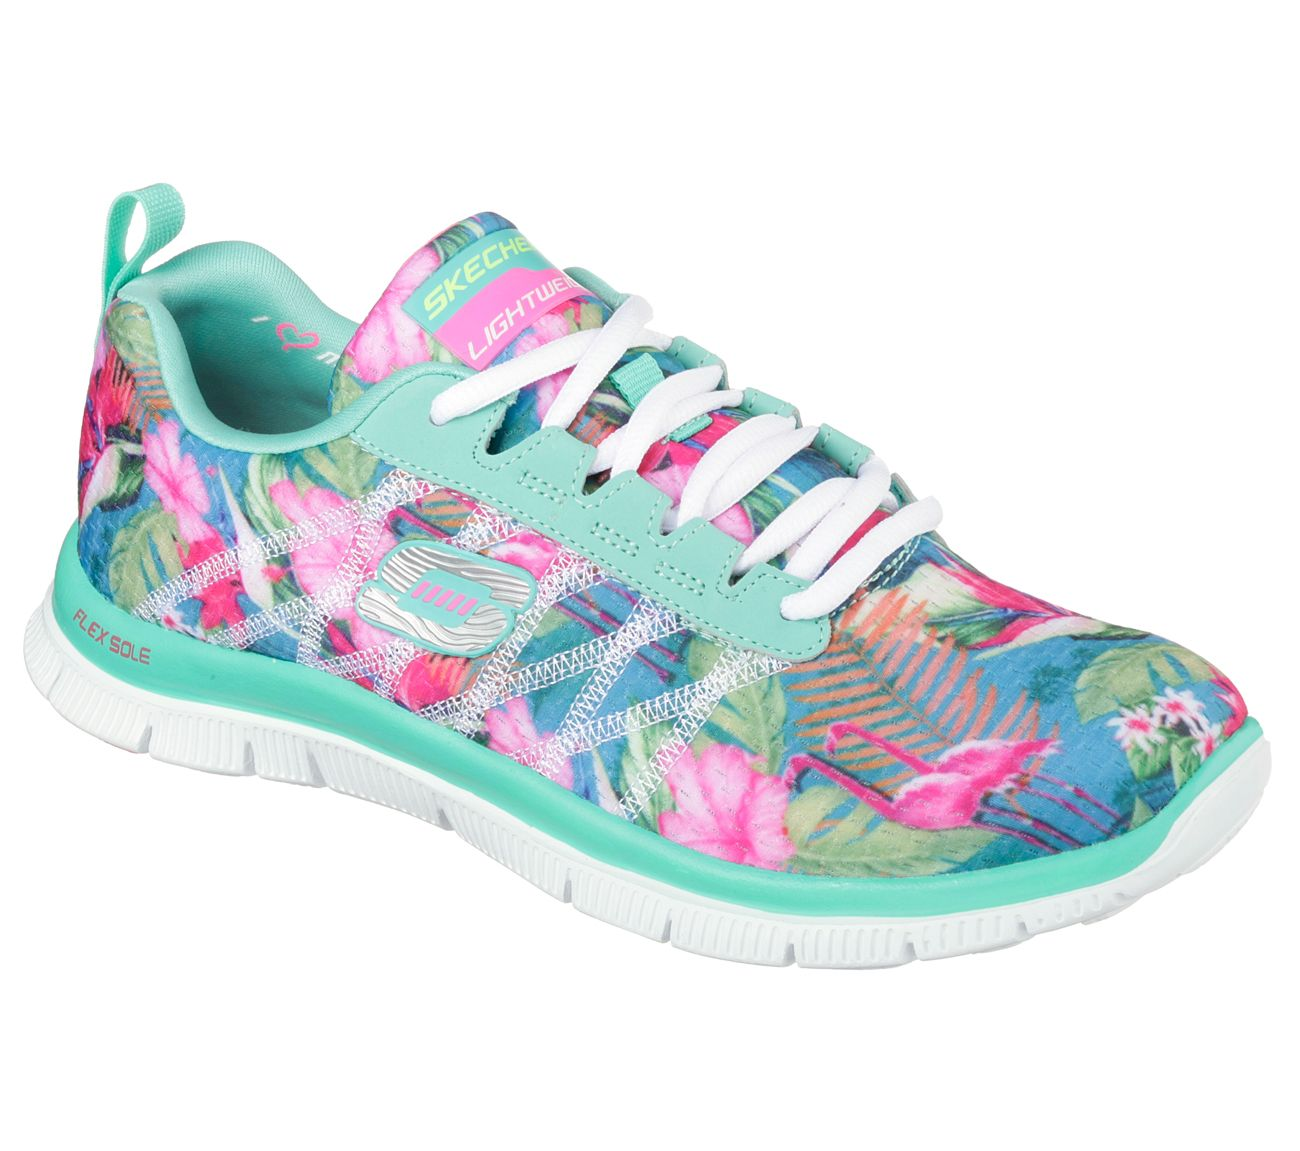 2b0e0eecce7e Buy SKECHERS Flex Appeal - Floral BloomTraining Shoes Shoes only  72.00